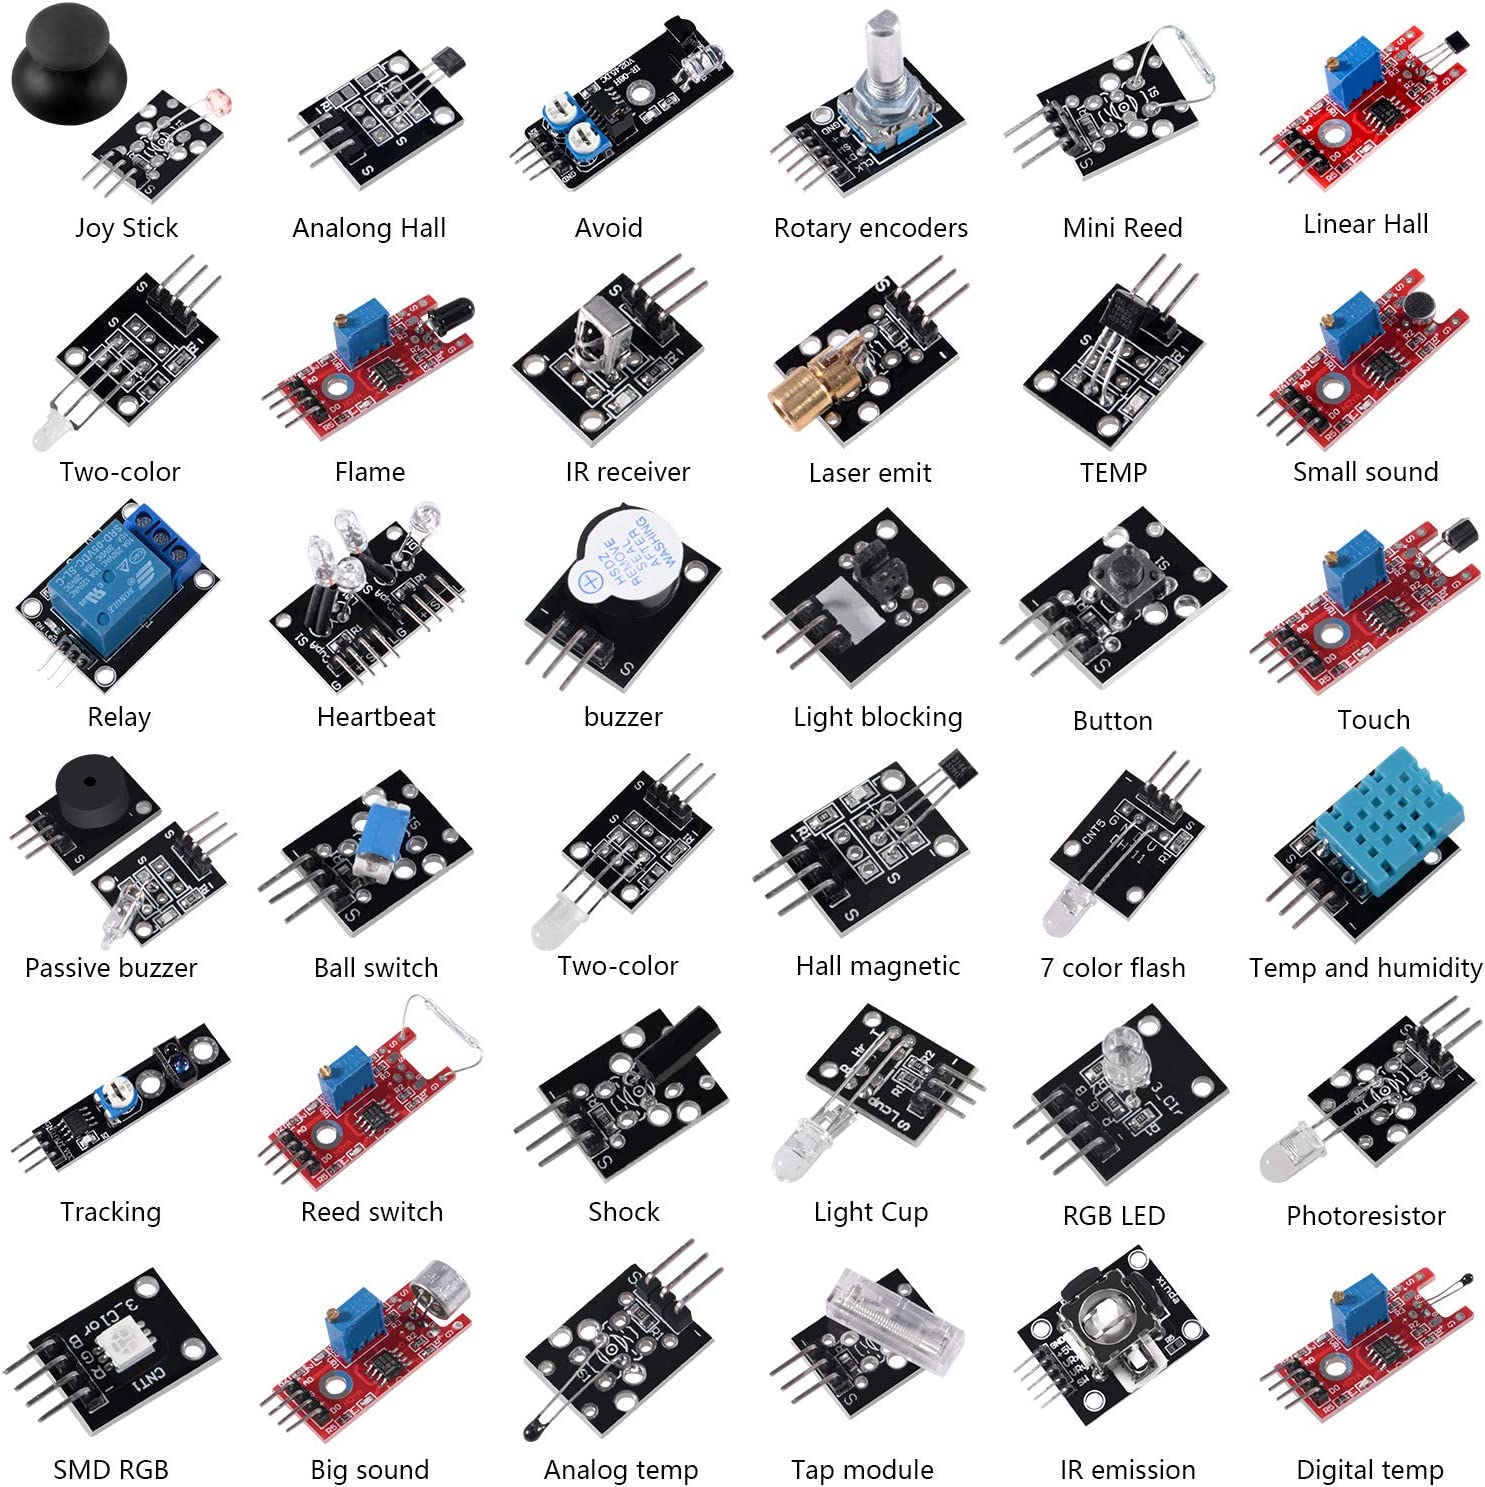 Aoicrie 37 Sensors Assortment Kit.37 Sensor Starter Kit for Arduino Raspberry pi Sensor kit 37in1 Robot Projects Starter Kits for Arduino, Raspberry pi 4 Pi 3,3B+,RPi A,Model B,B+,2